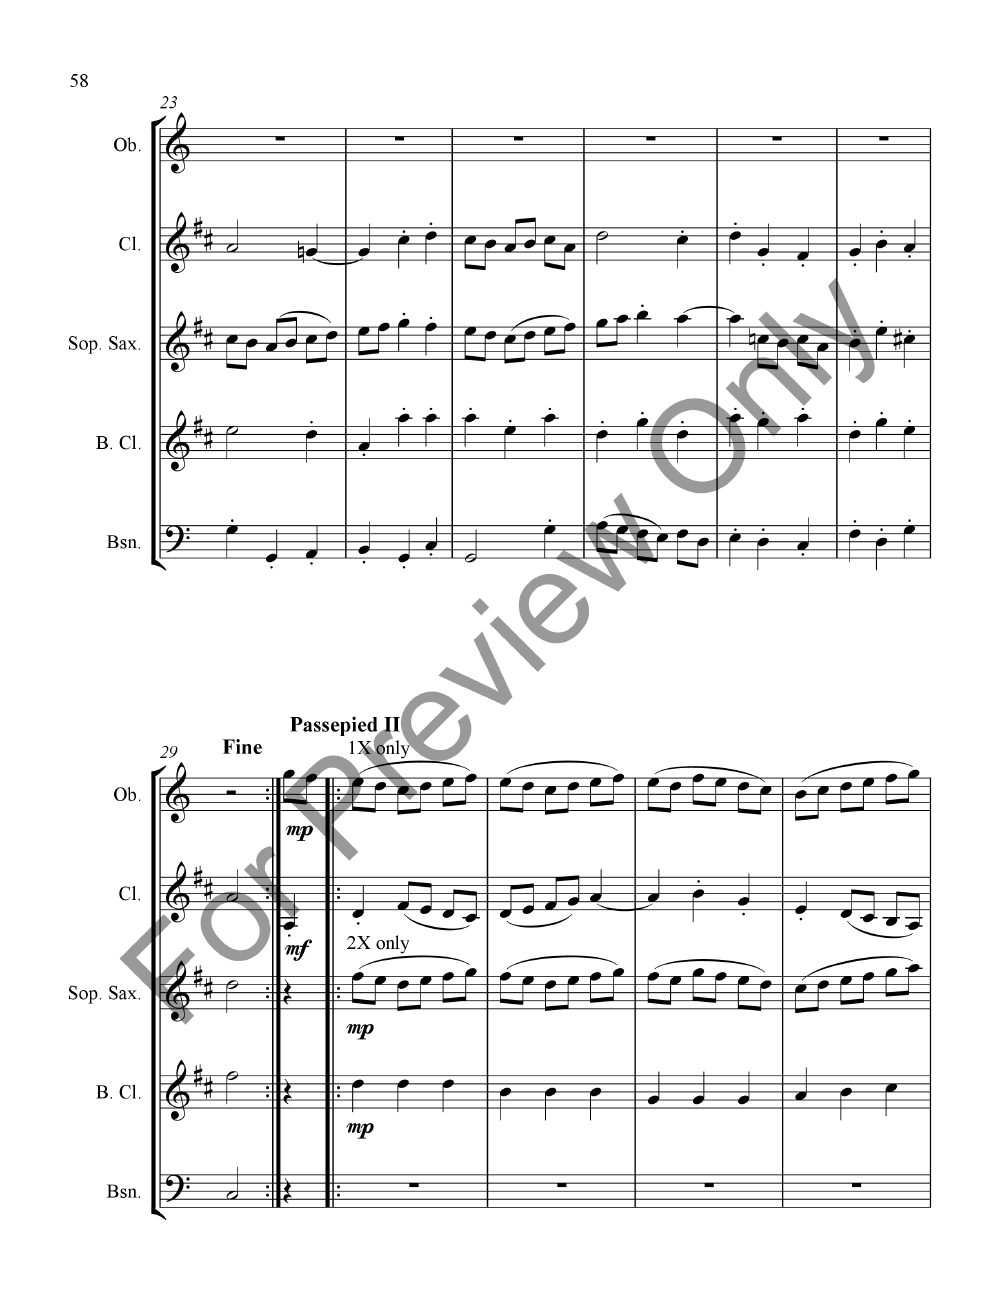 Orchestral Suite No. 1 in C Major Thumbnail